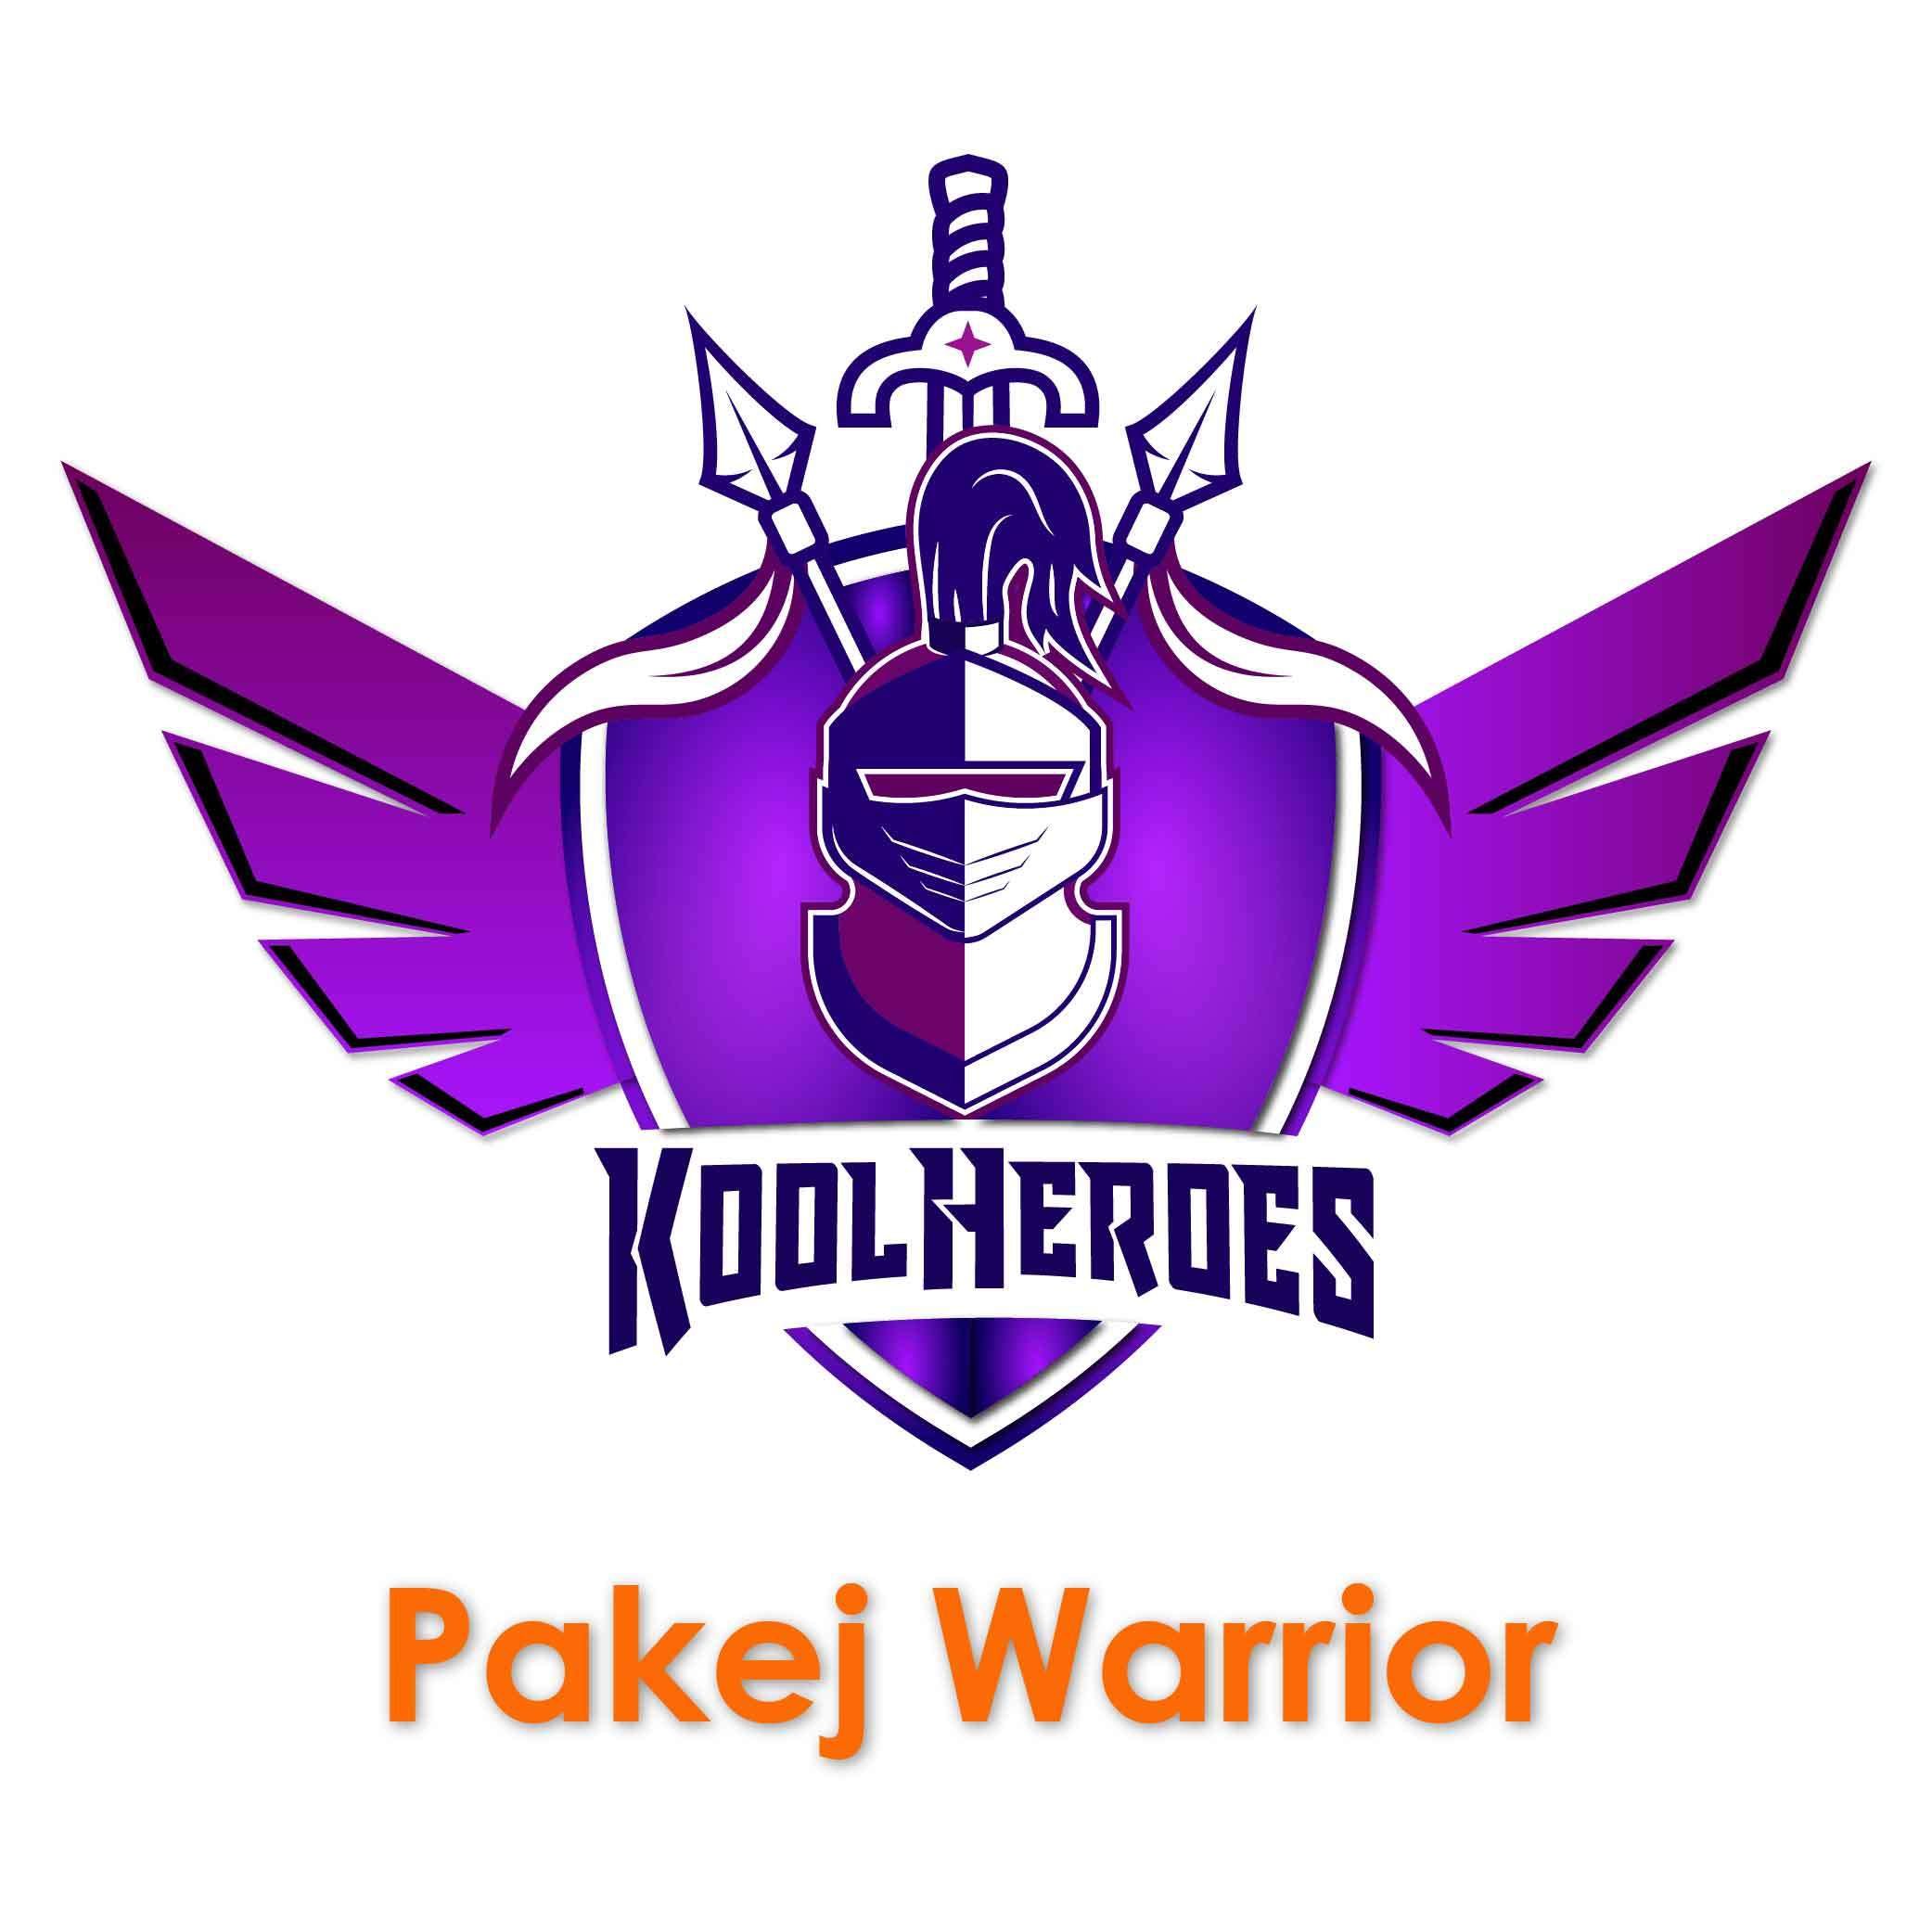 KoolHeroes - Pakej Warrior.jpg